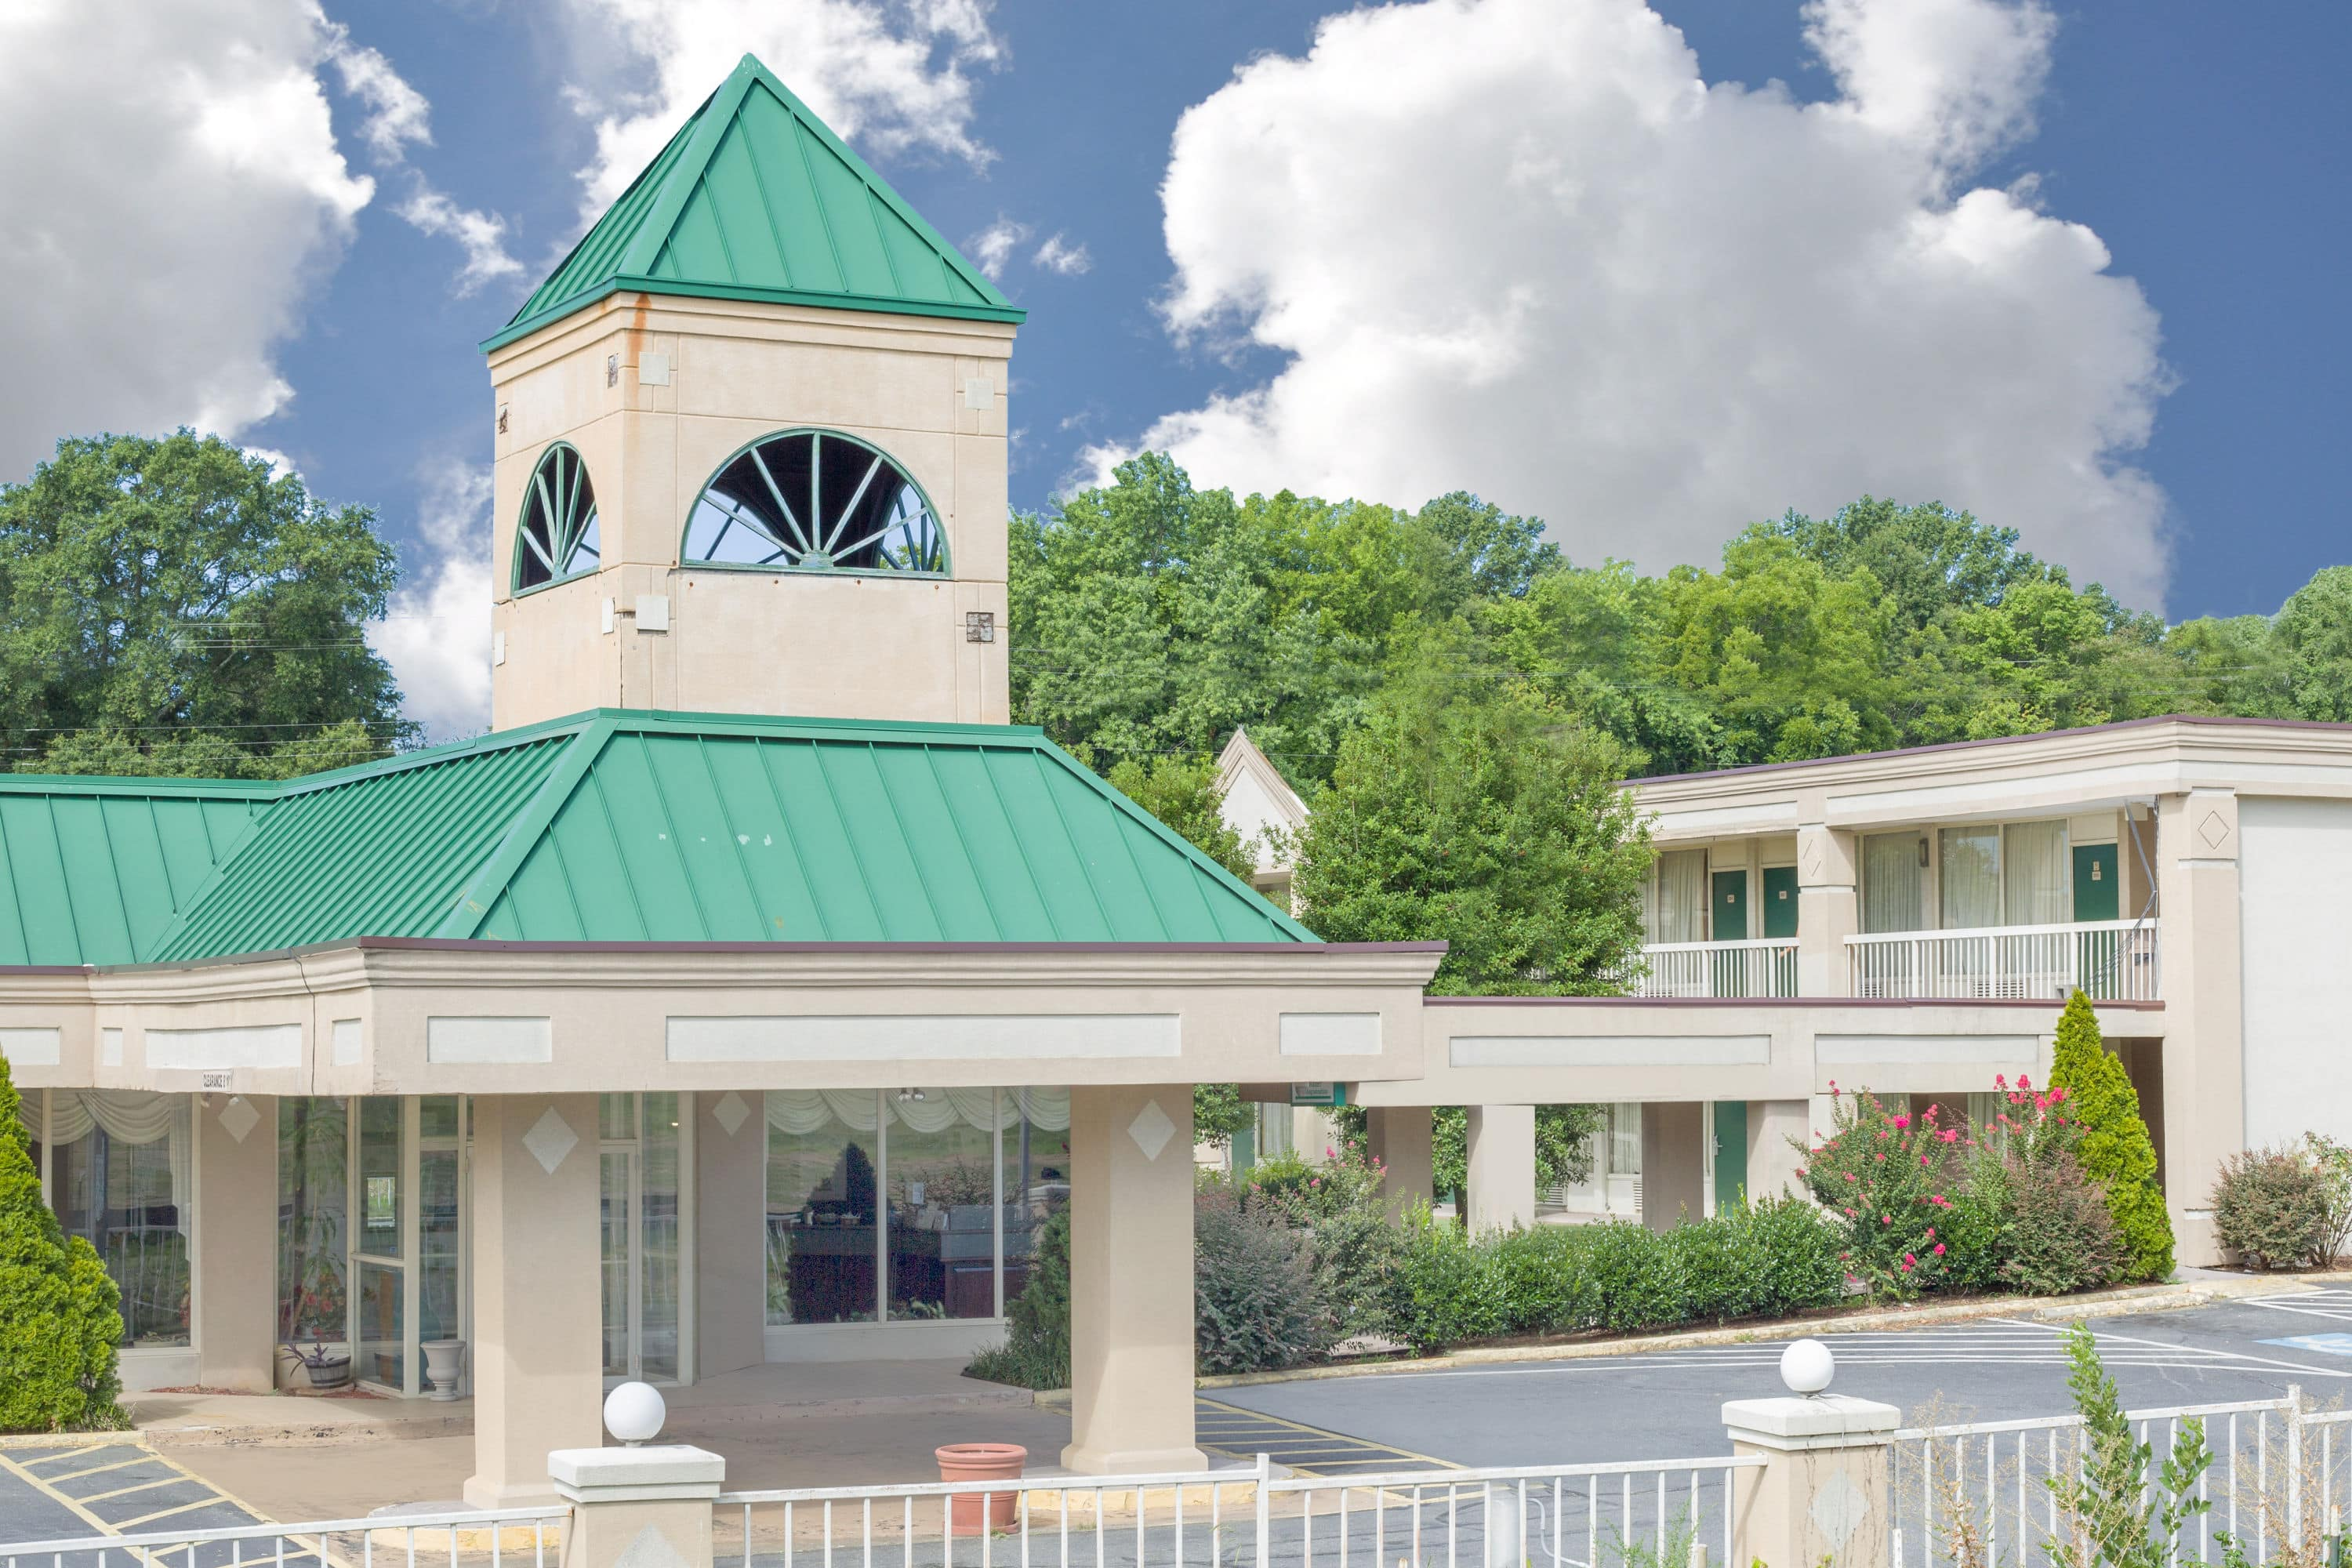 Stunning Exterior Of Howard Johnson Inn Hotel In Concord North Carolina With Hotels Near Charlotte Motor